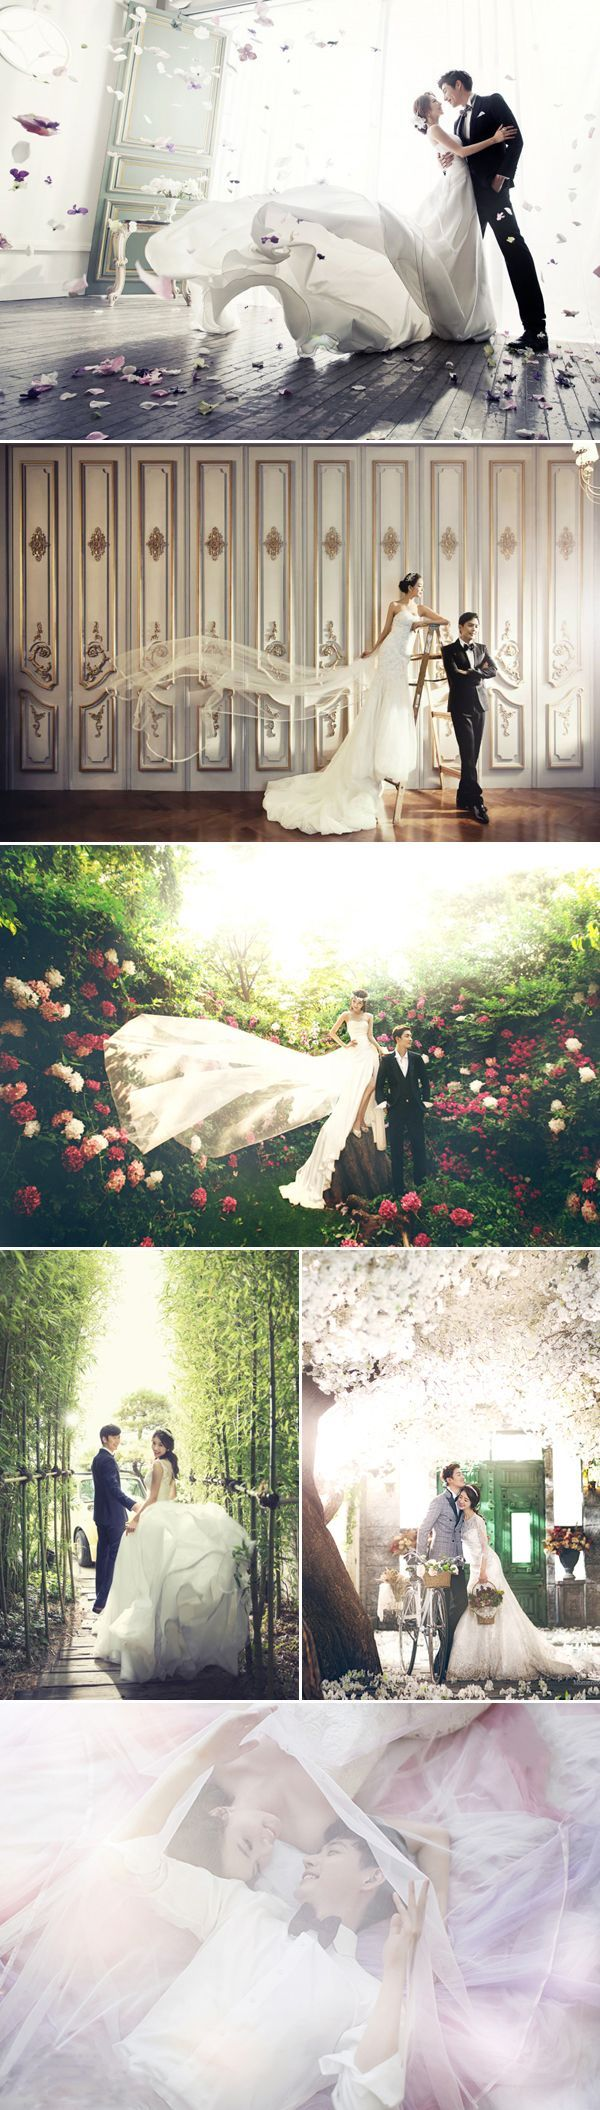 best wedding studio images on pinterest pre wedding photography